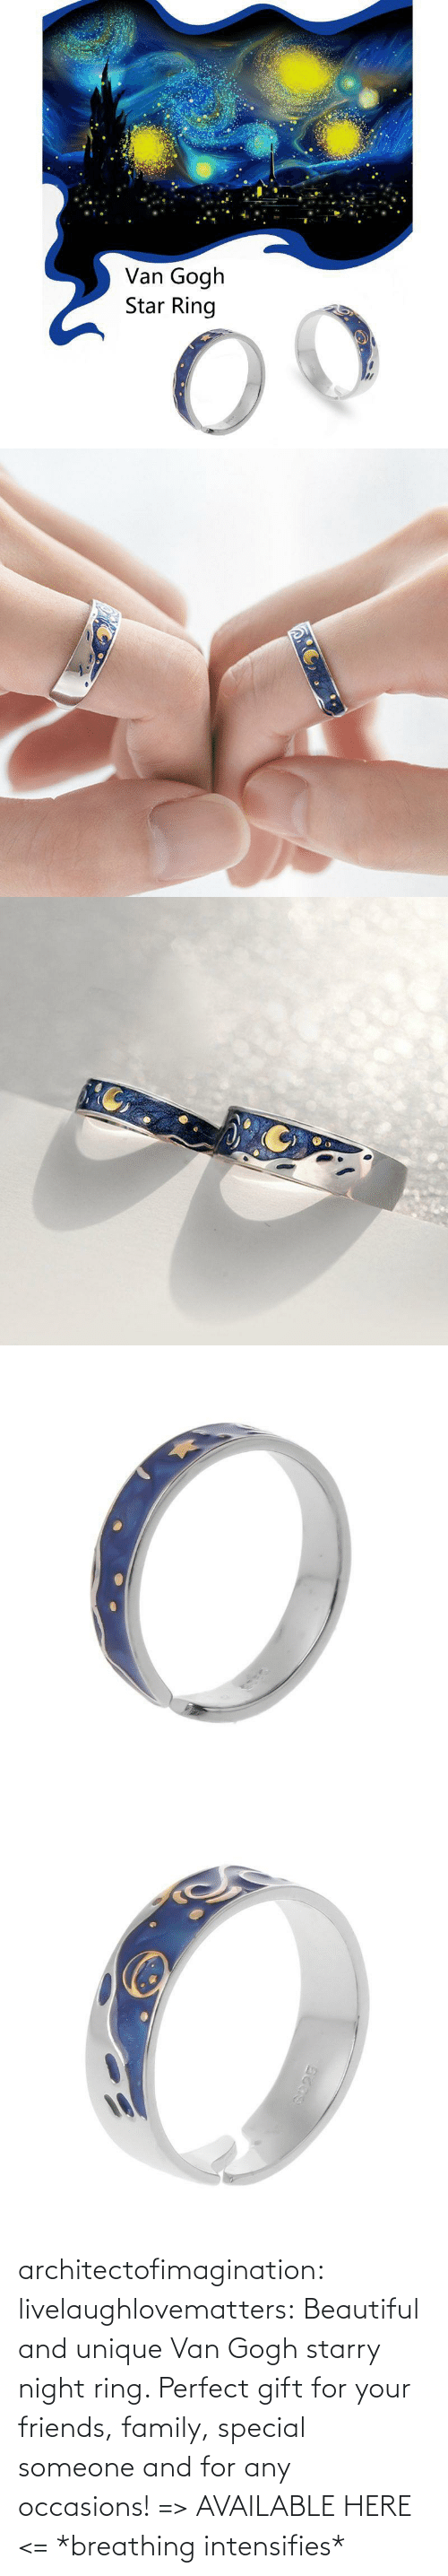 night: architectofimagination:  livelaughlovematters: Beautiful and unique Van Gogh starry night ring. Perfect gift for your friends, family, special someone and for any occasions! => AVAILABLE HERE <=    *breathing intensifies*